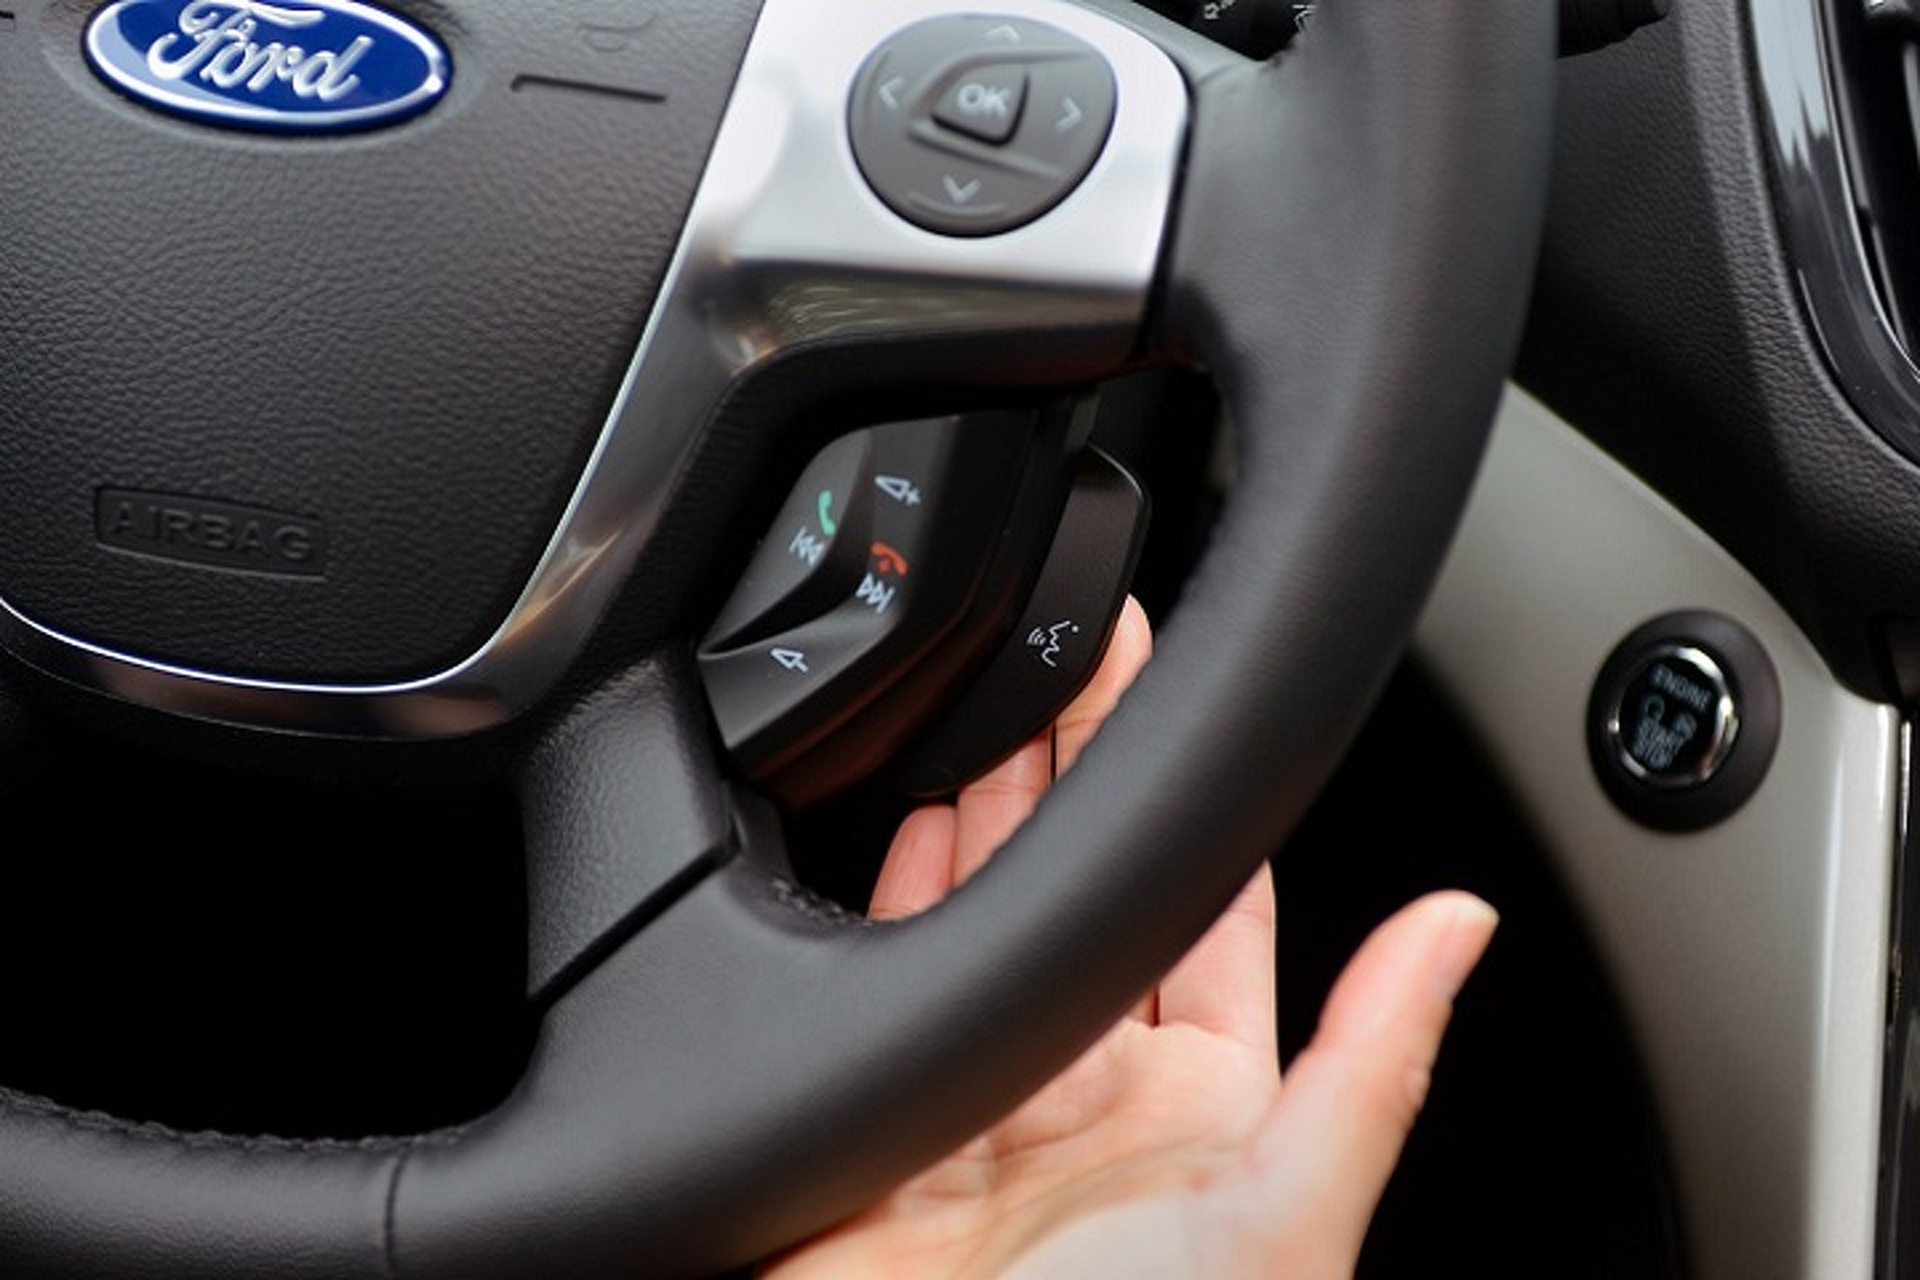 CES 2016: Ford Partners With Amazon To Connect Your Life To Your Car